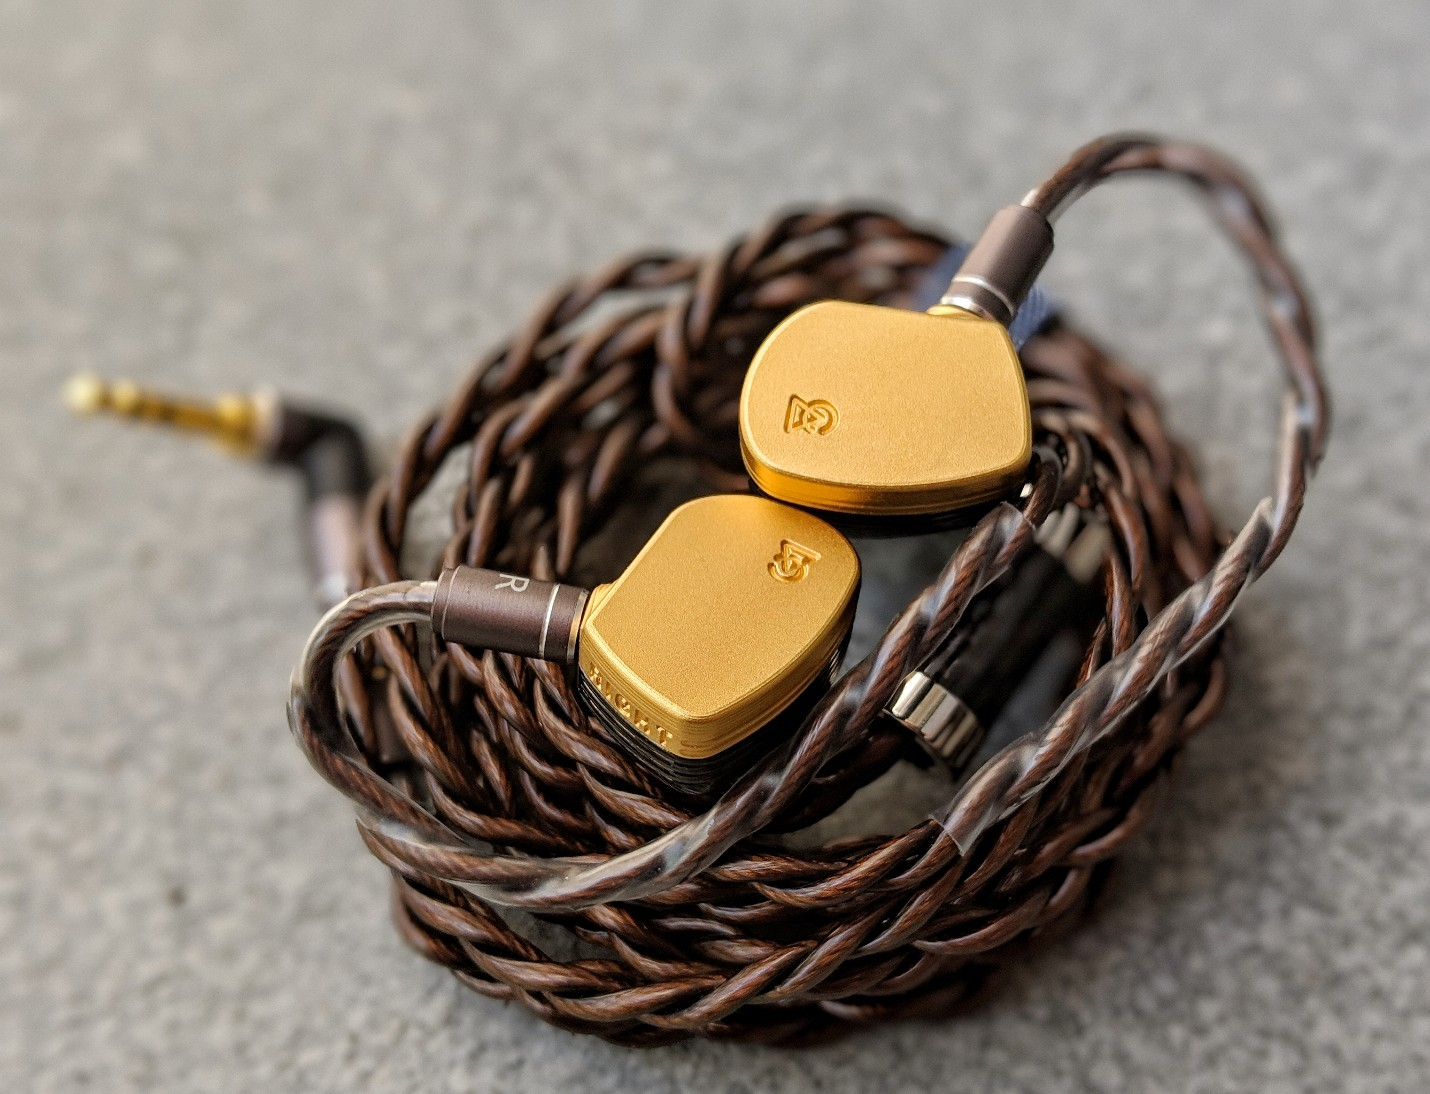 Campfire Audio Solaris earphones with the Dunu Hulk Cable.